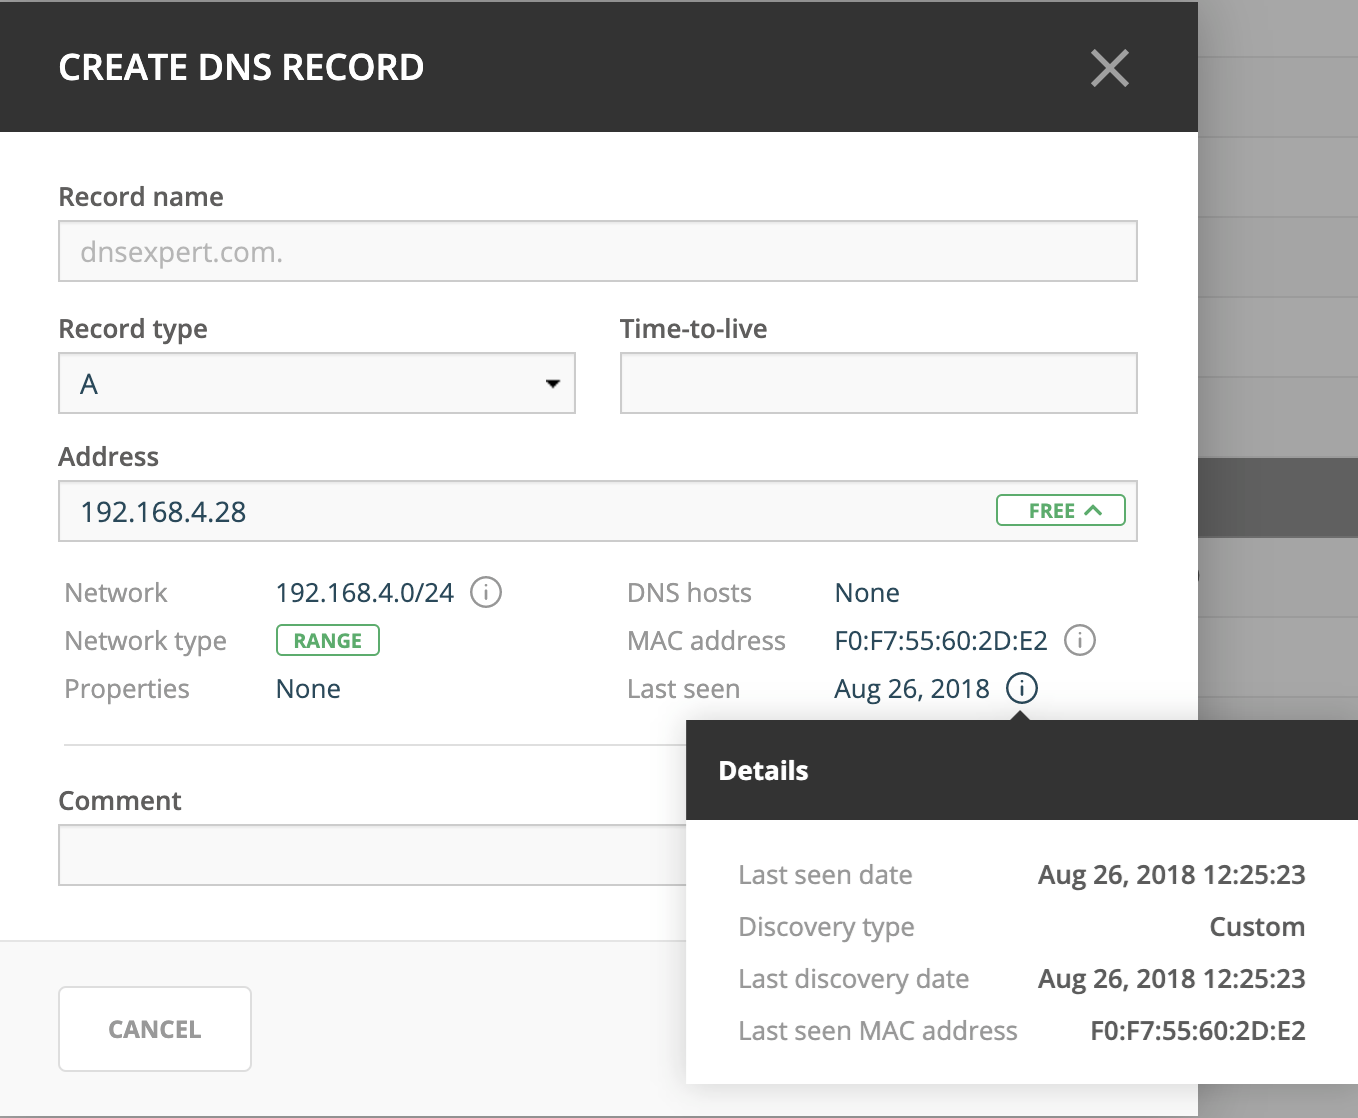 ../../../_images/create-DNS-record-ipam-insights-last-seen-Micetro.png